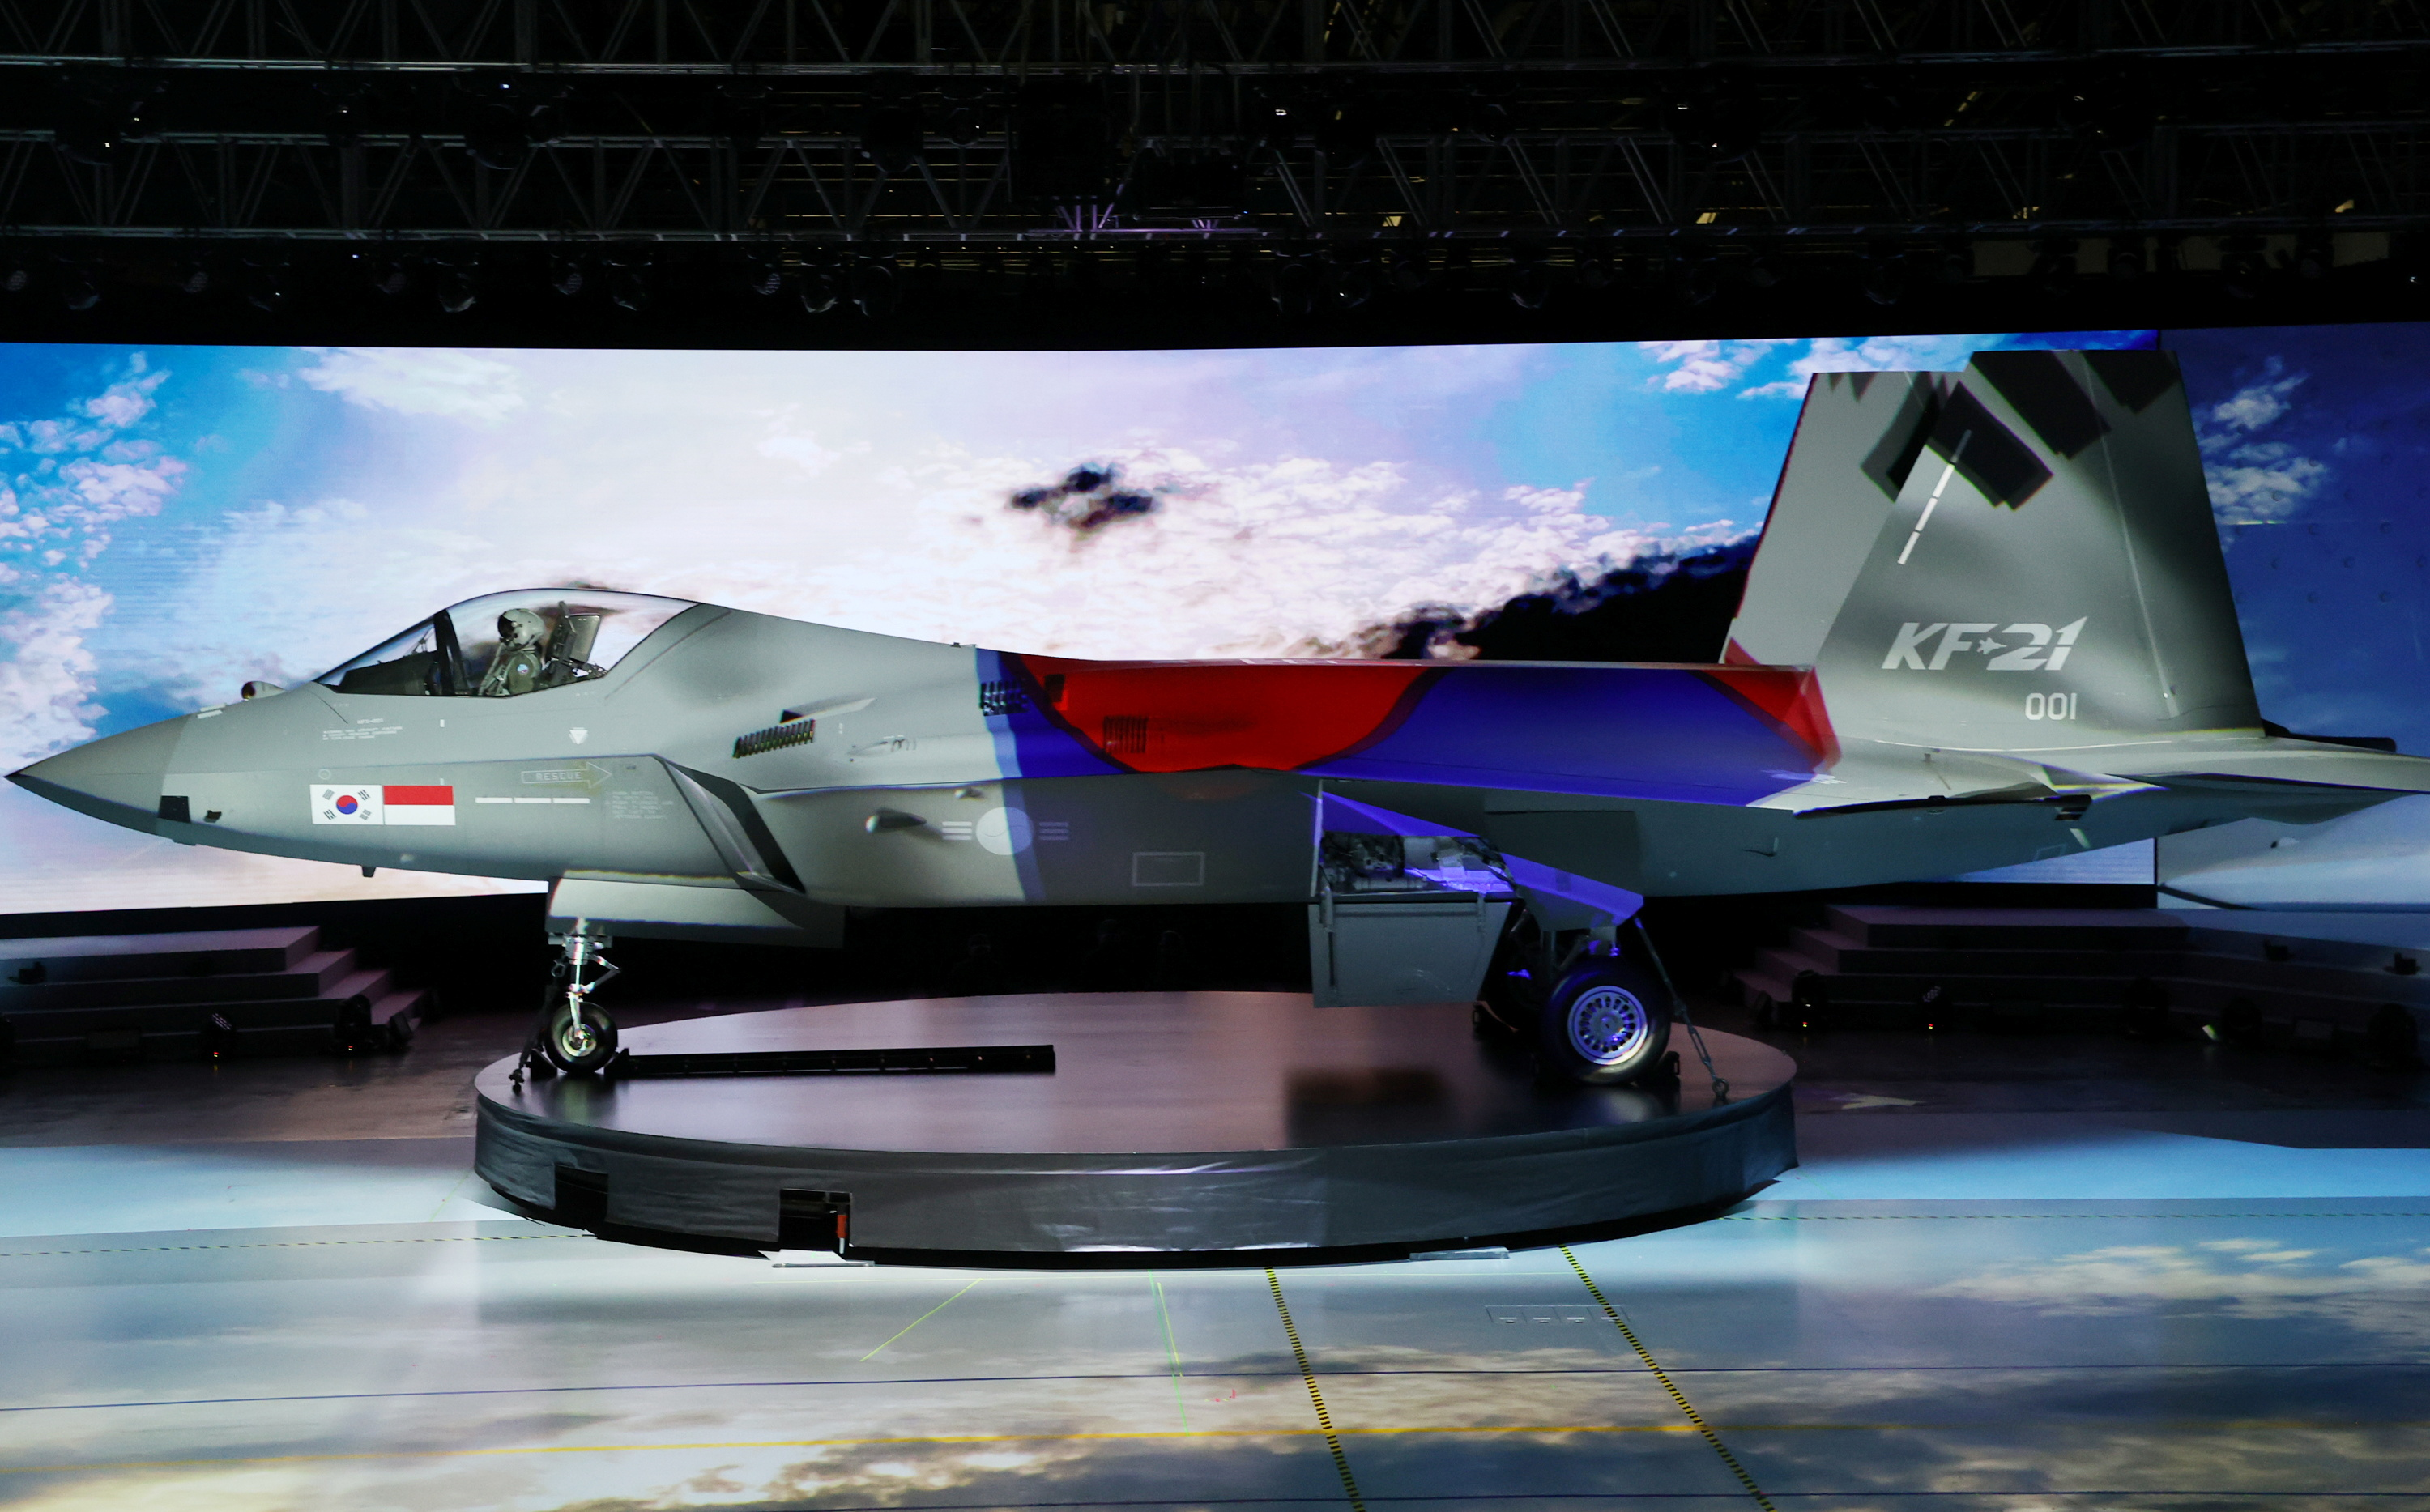 The country's first homegrown fighter jet called KF-21 is unveiled during its rollout ceremony in Sacheon, South Korea, April 9, 2021.   Yonhap via REUTERS